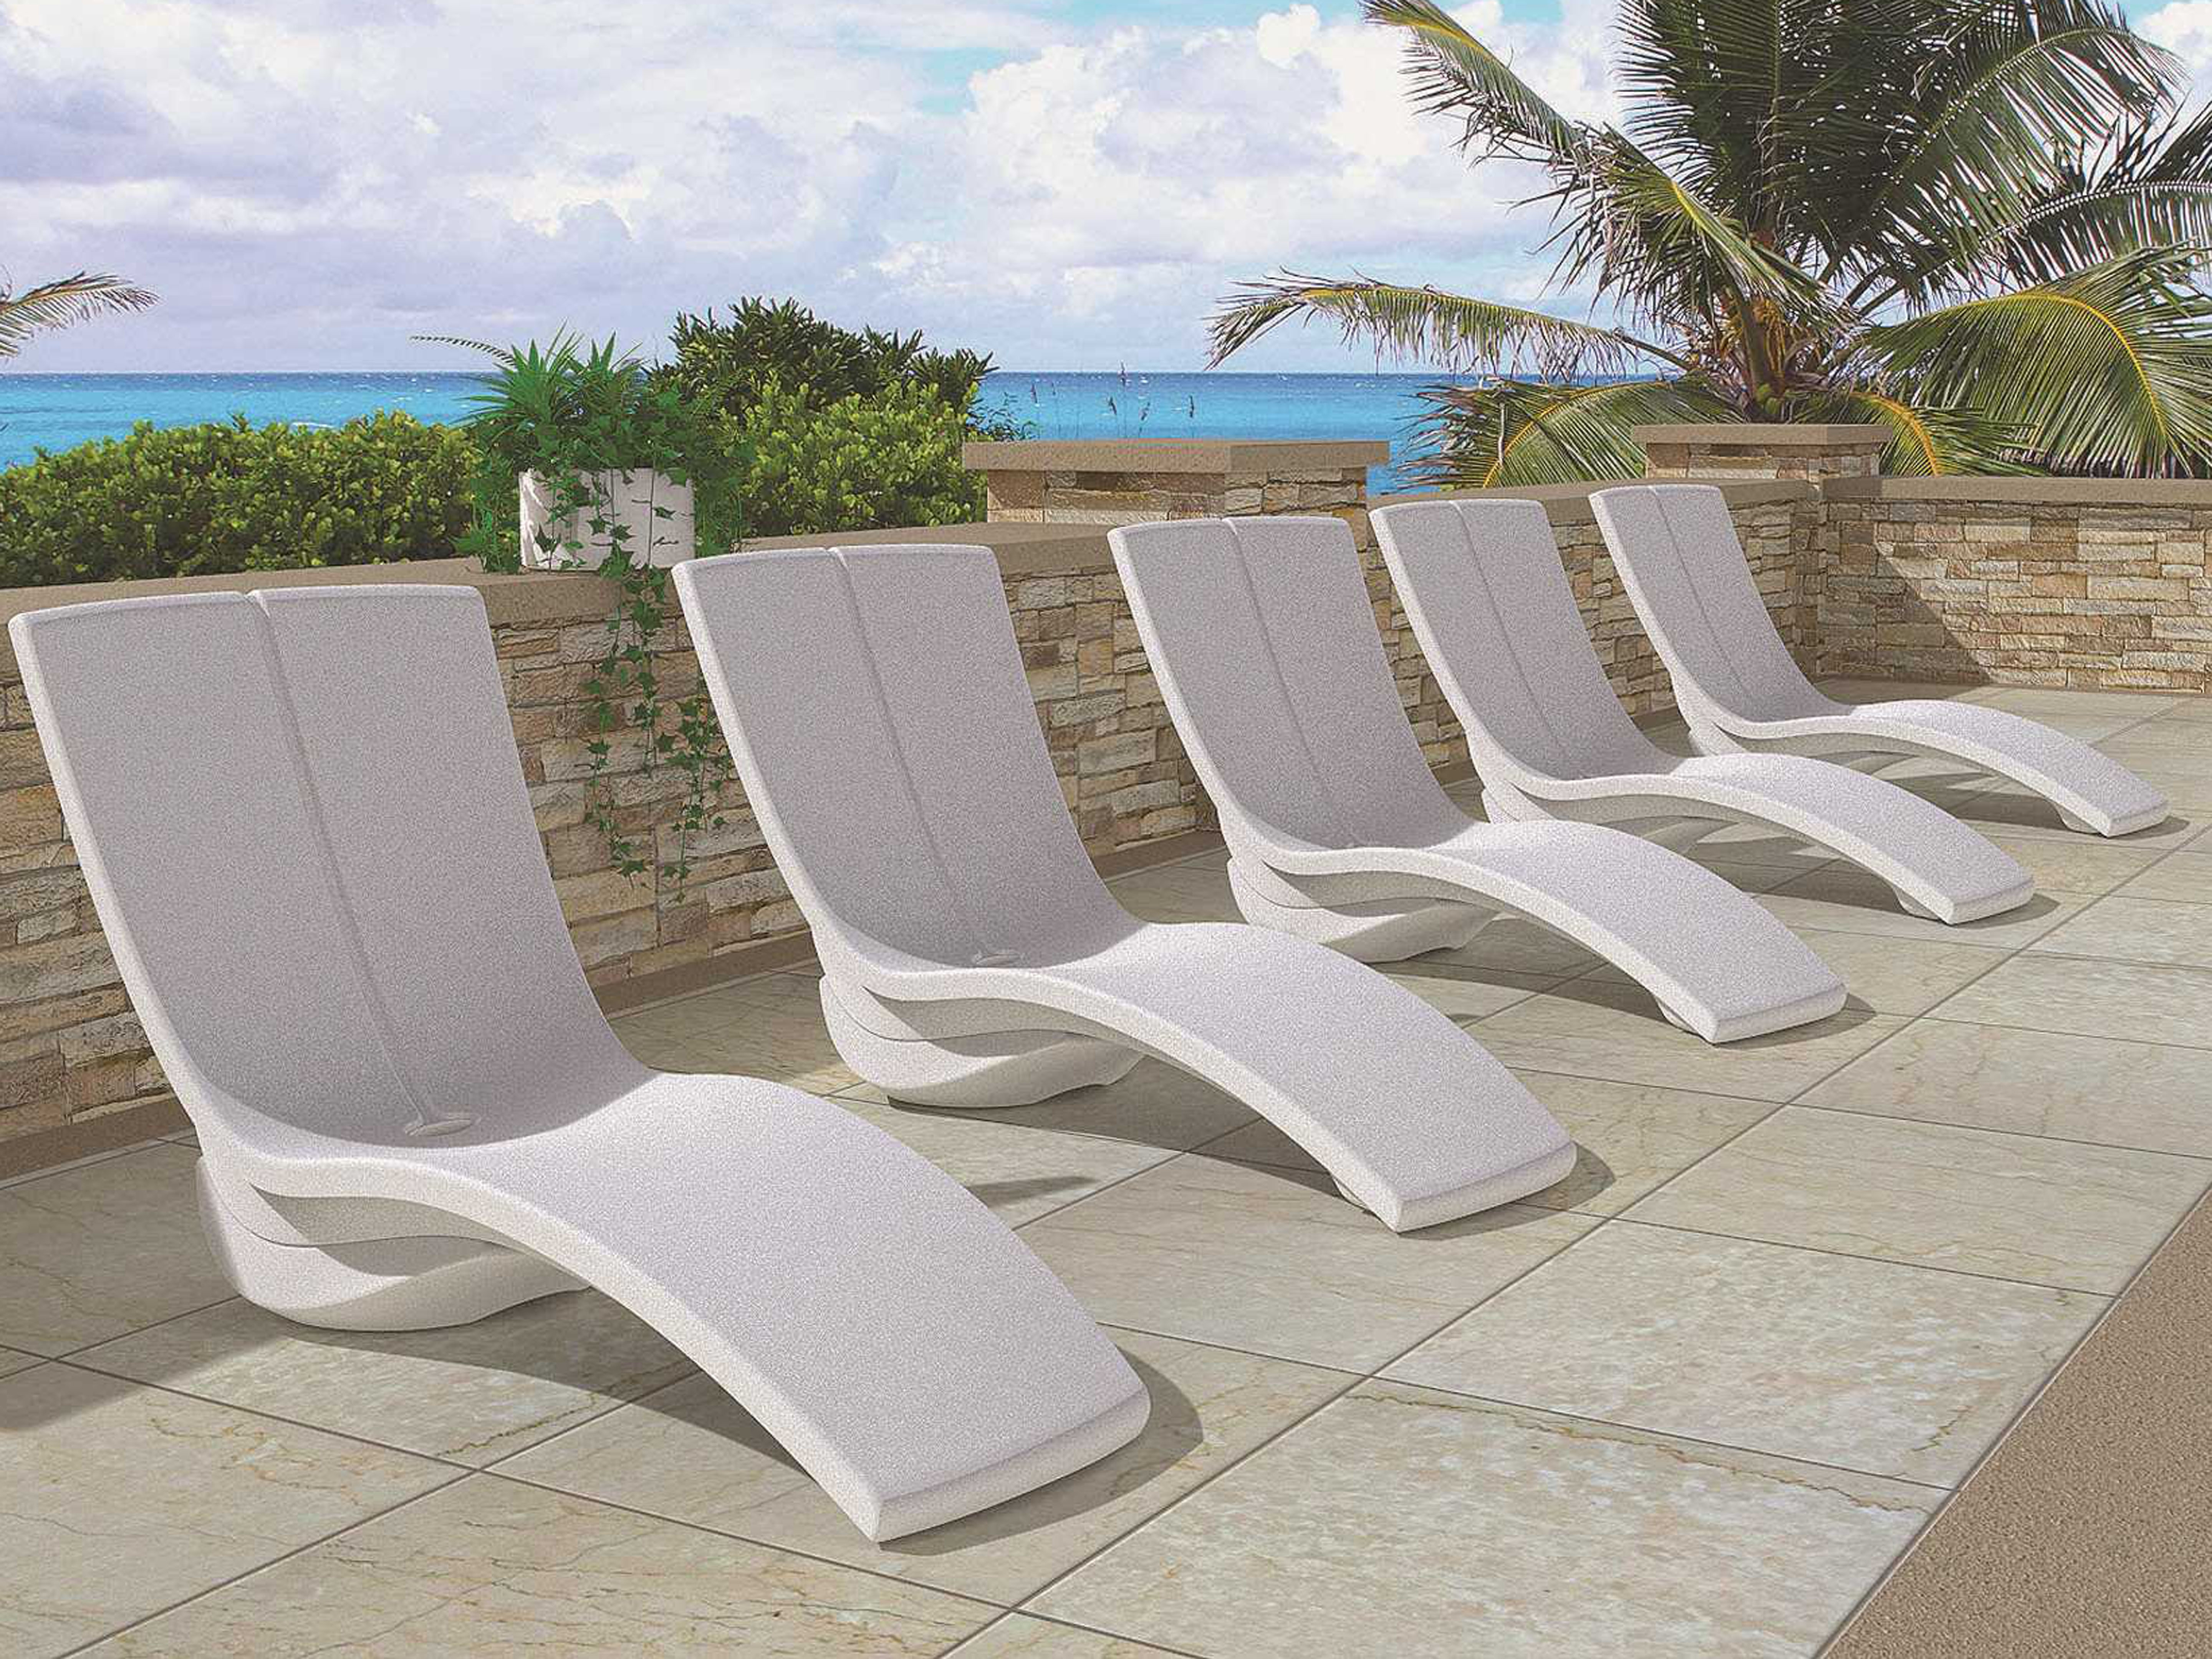 Tropitone Curve Recycled Plastic Rotoform3 Chaise Lounge With In Most Up To Date Tropitone Chaise Lounges (View 10 of 15)